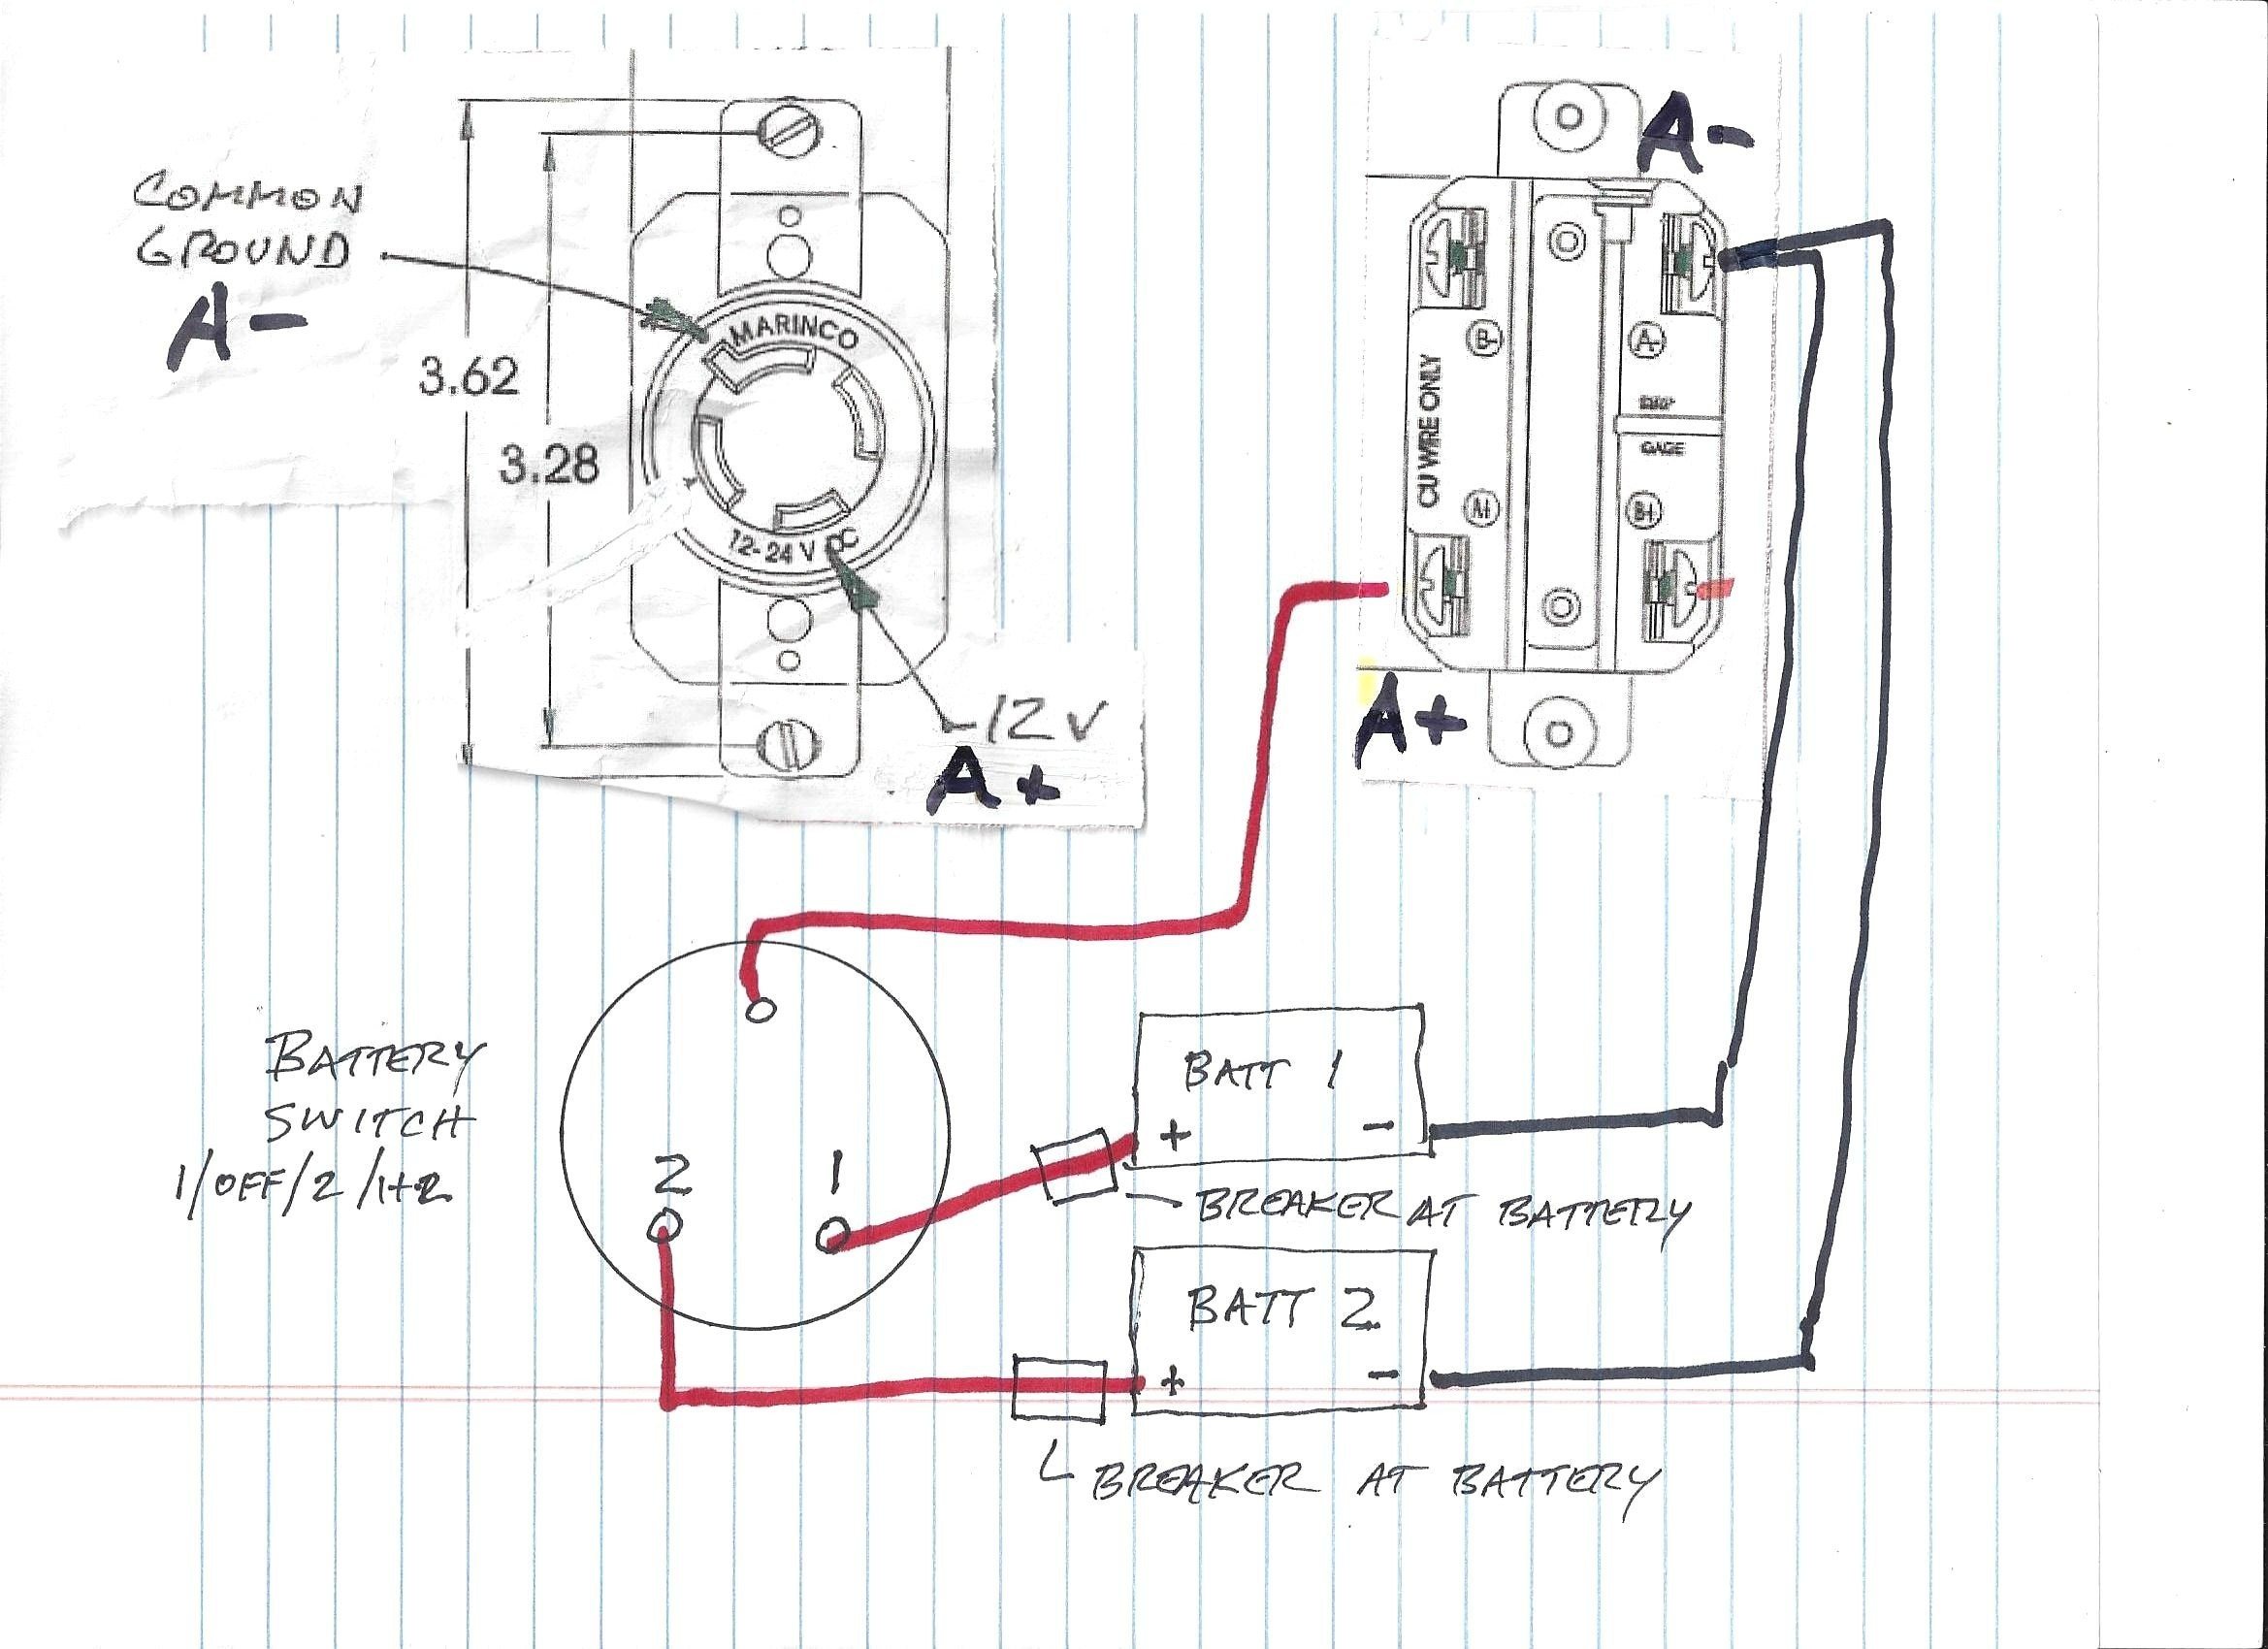 [DIAGRAM] Trailer Wiring Socket Recommendation For A 4